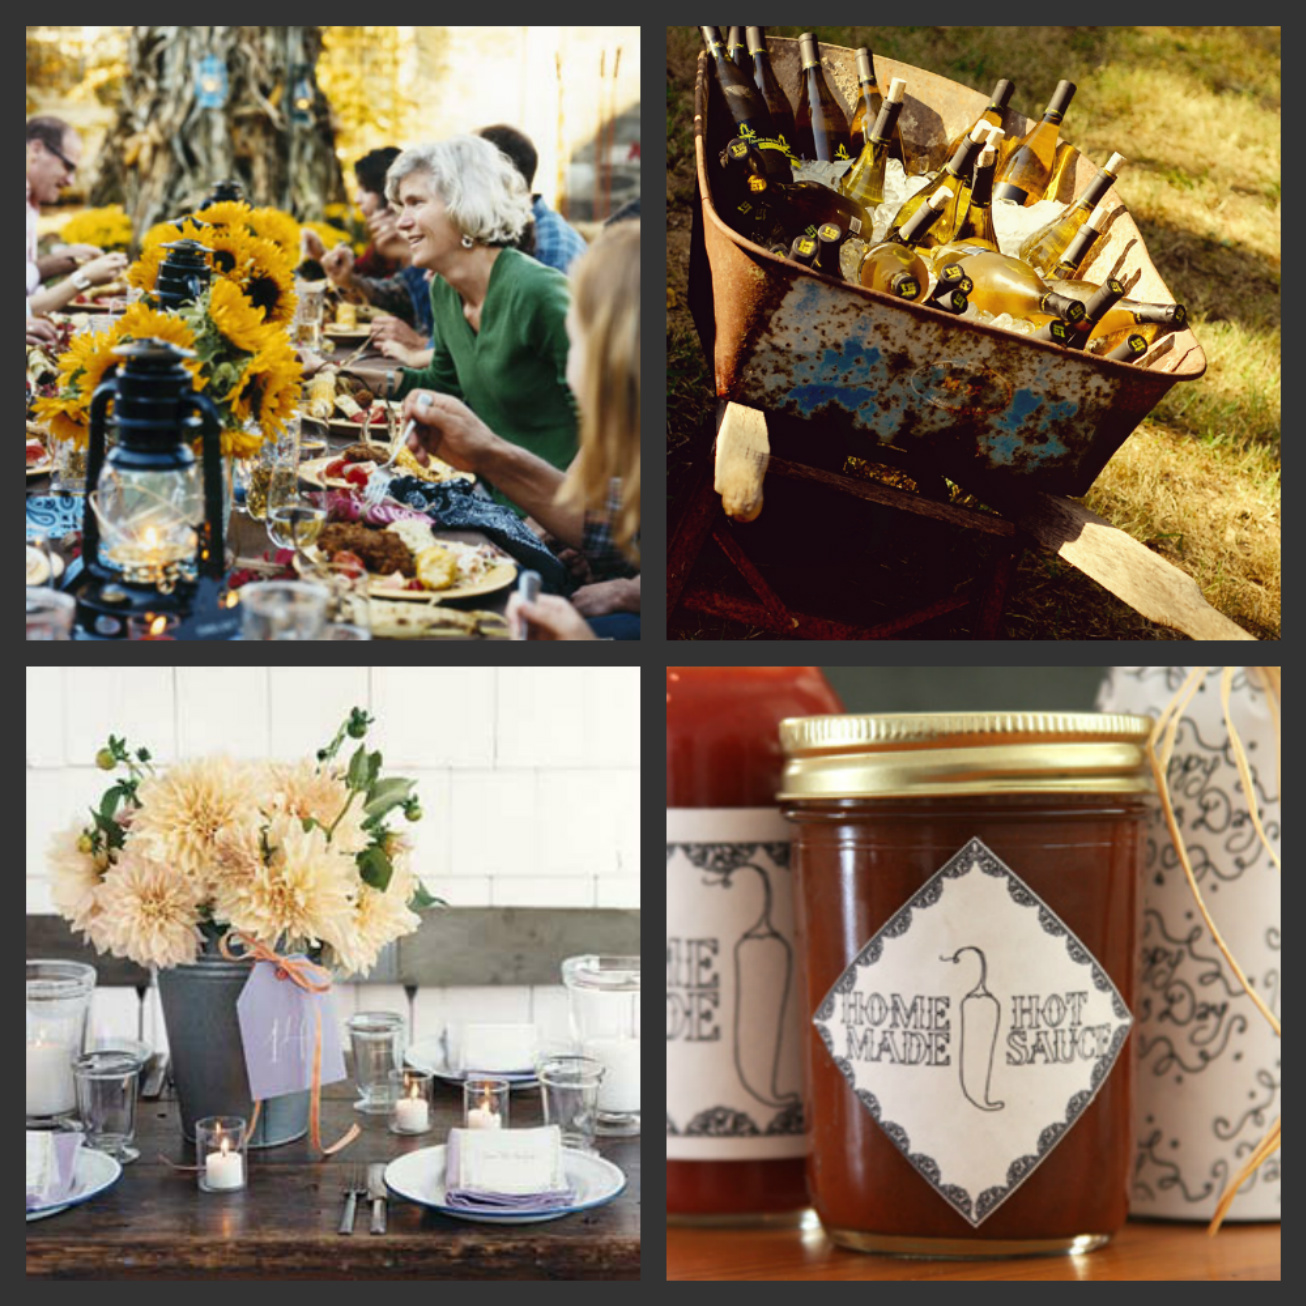 Bbq Wedding Reception Ideas: Weddings Are Fun Blog: A Barbeque Themed Wedding Style Guide